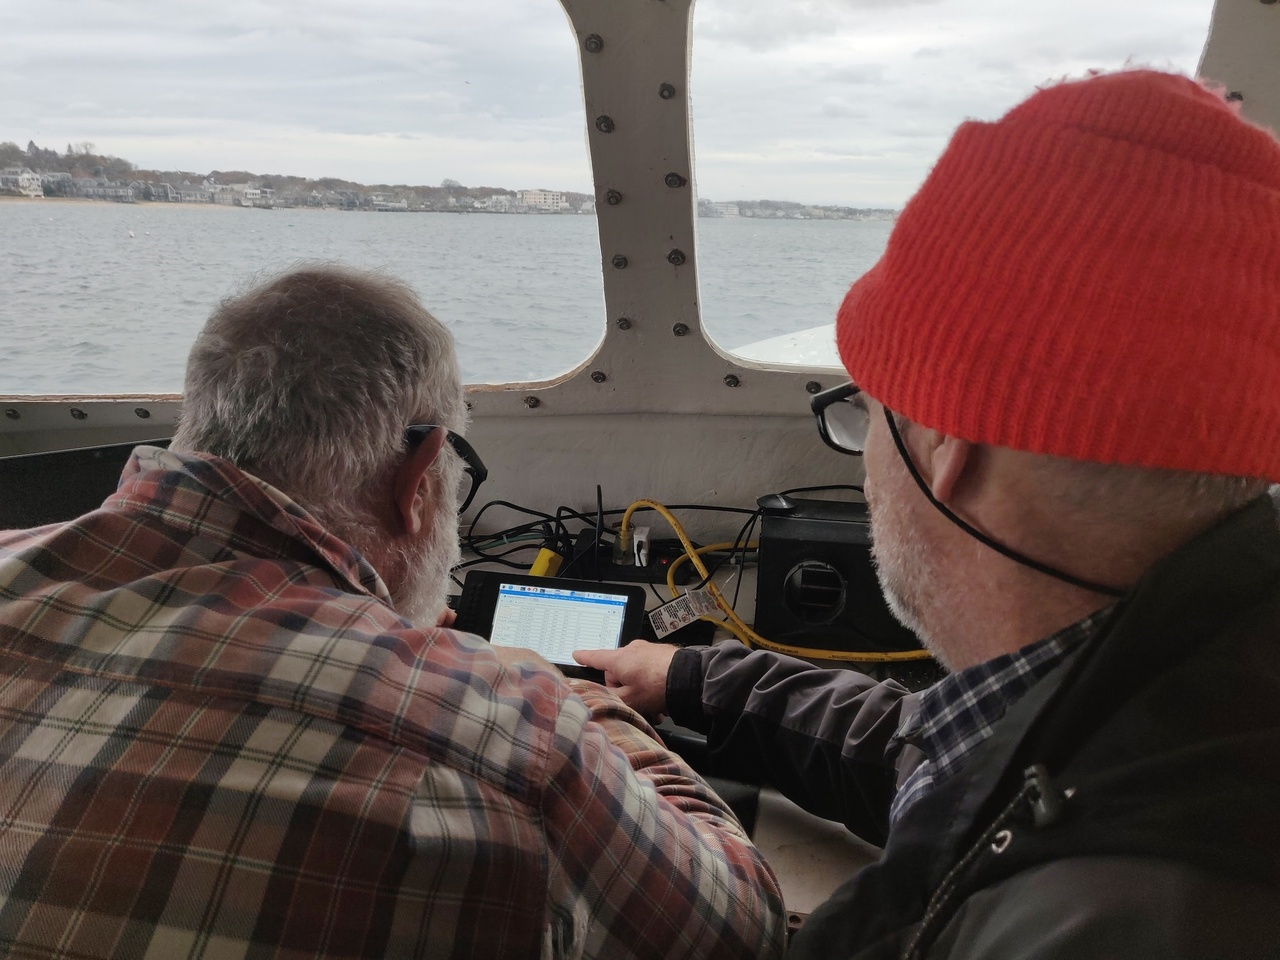 fishermen in wheelhouse reading data on a small display